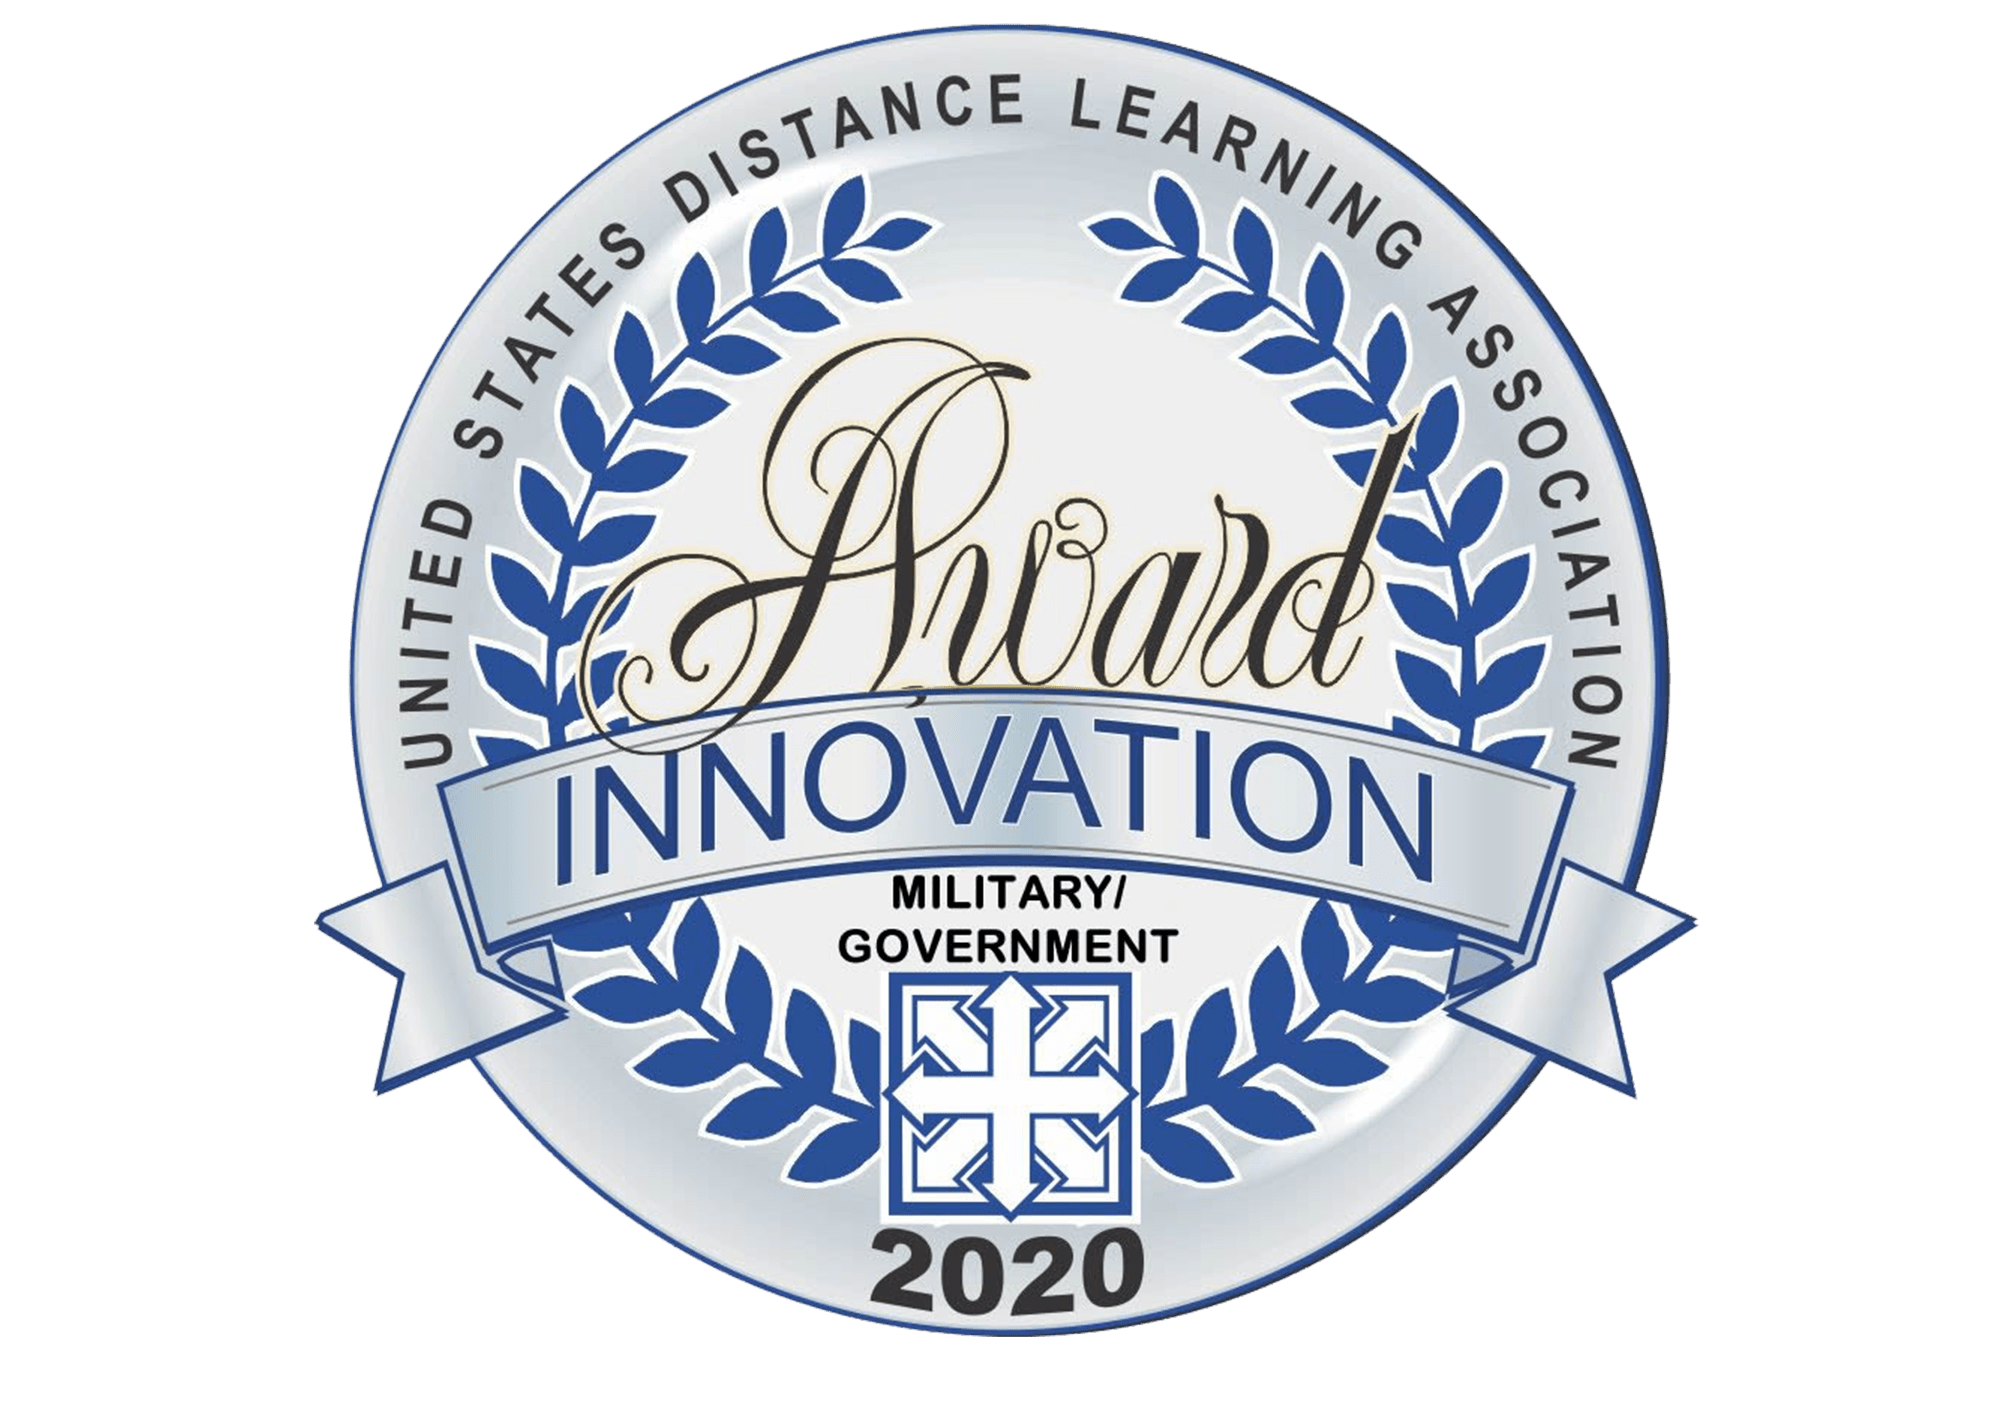 When Is Usdla 2020 Christmas Break? Veracity Learning Technology Consultants: xAPI, LRS, Learning